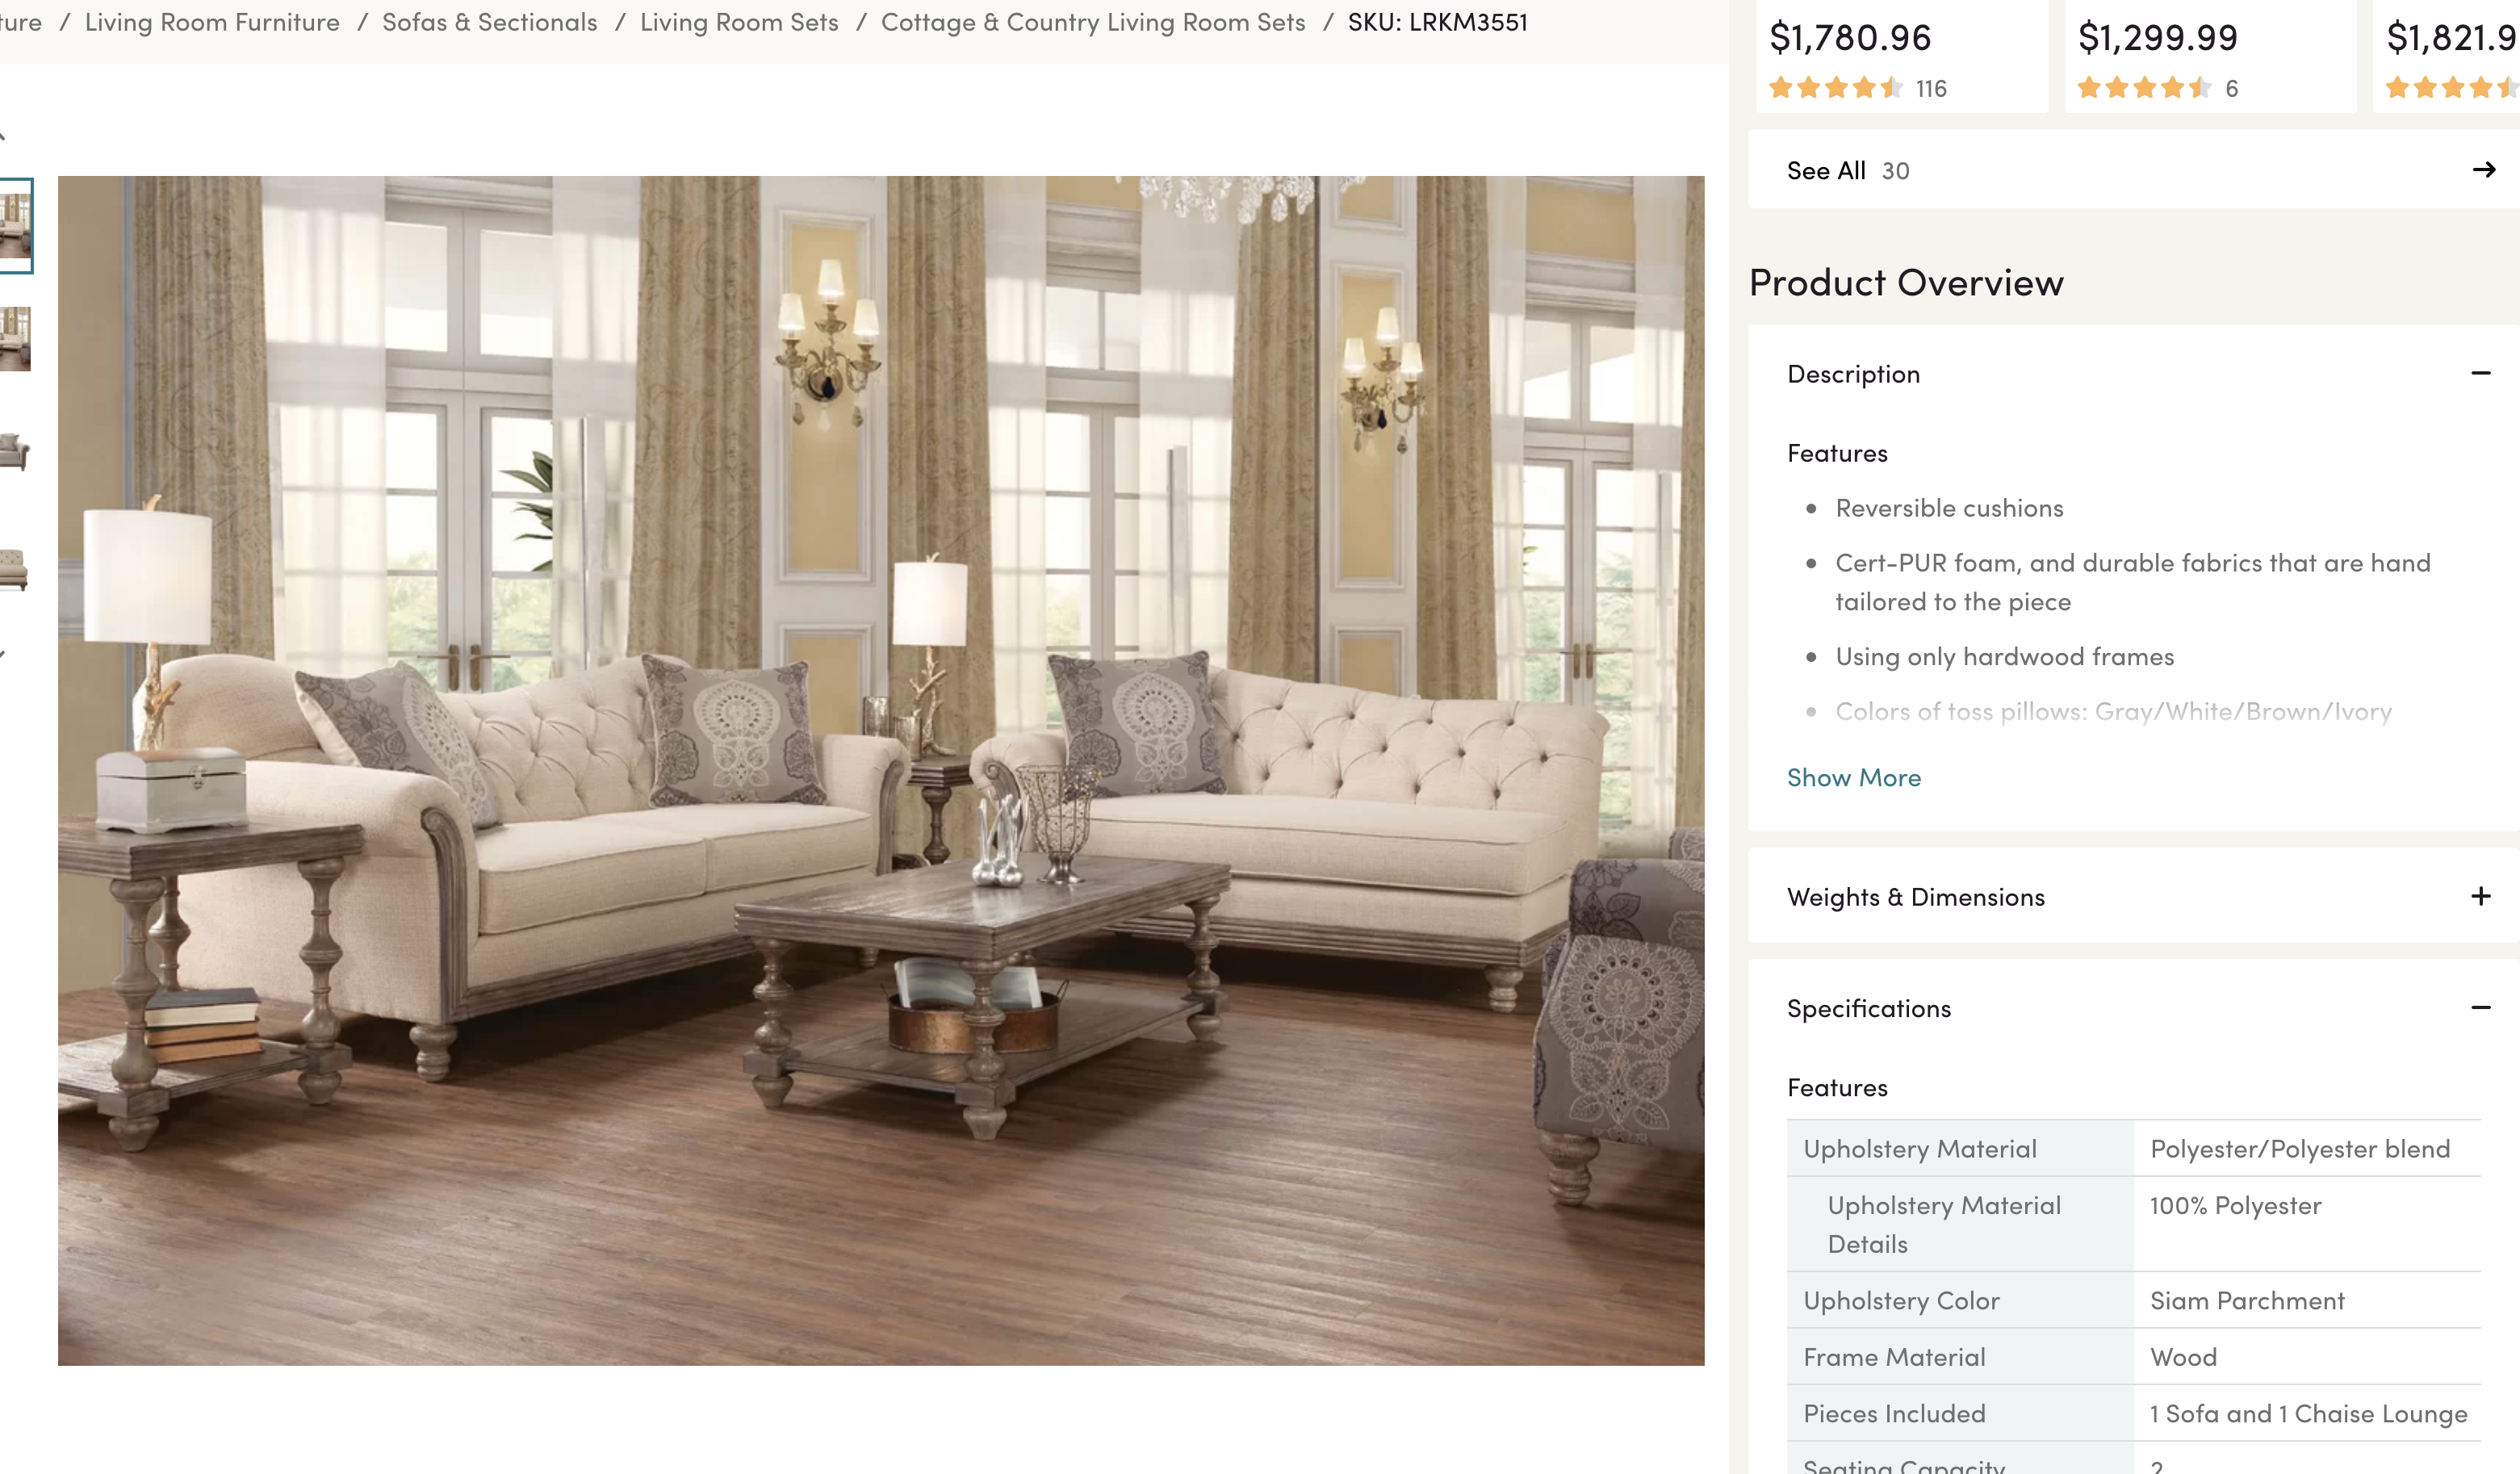 Wayfair product specs